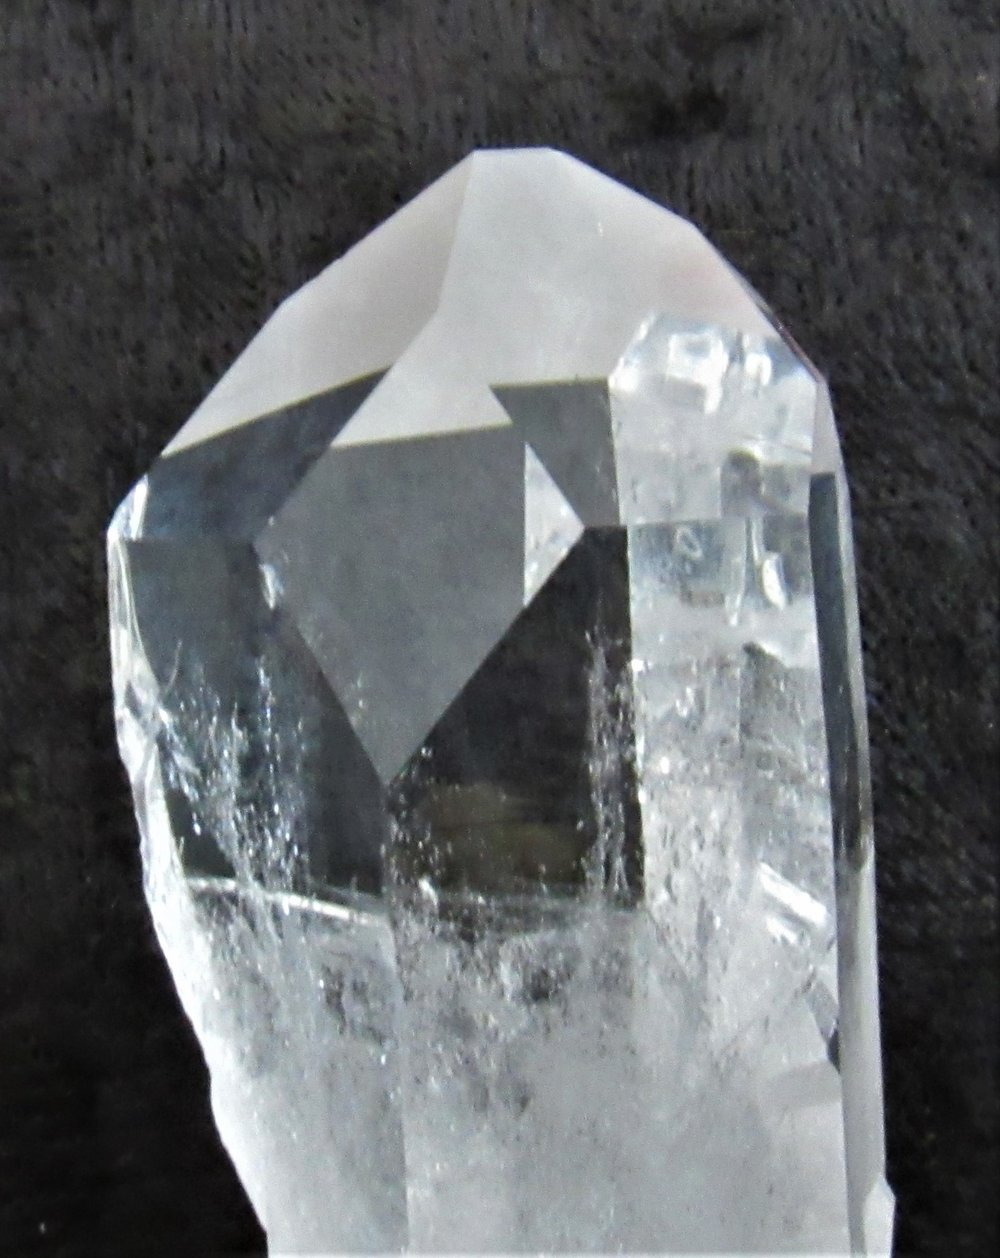 Window - A face or 'window' that is in the shape of a diamond.